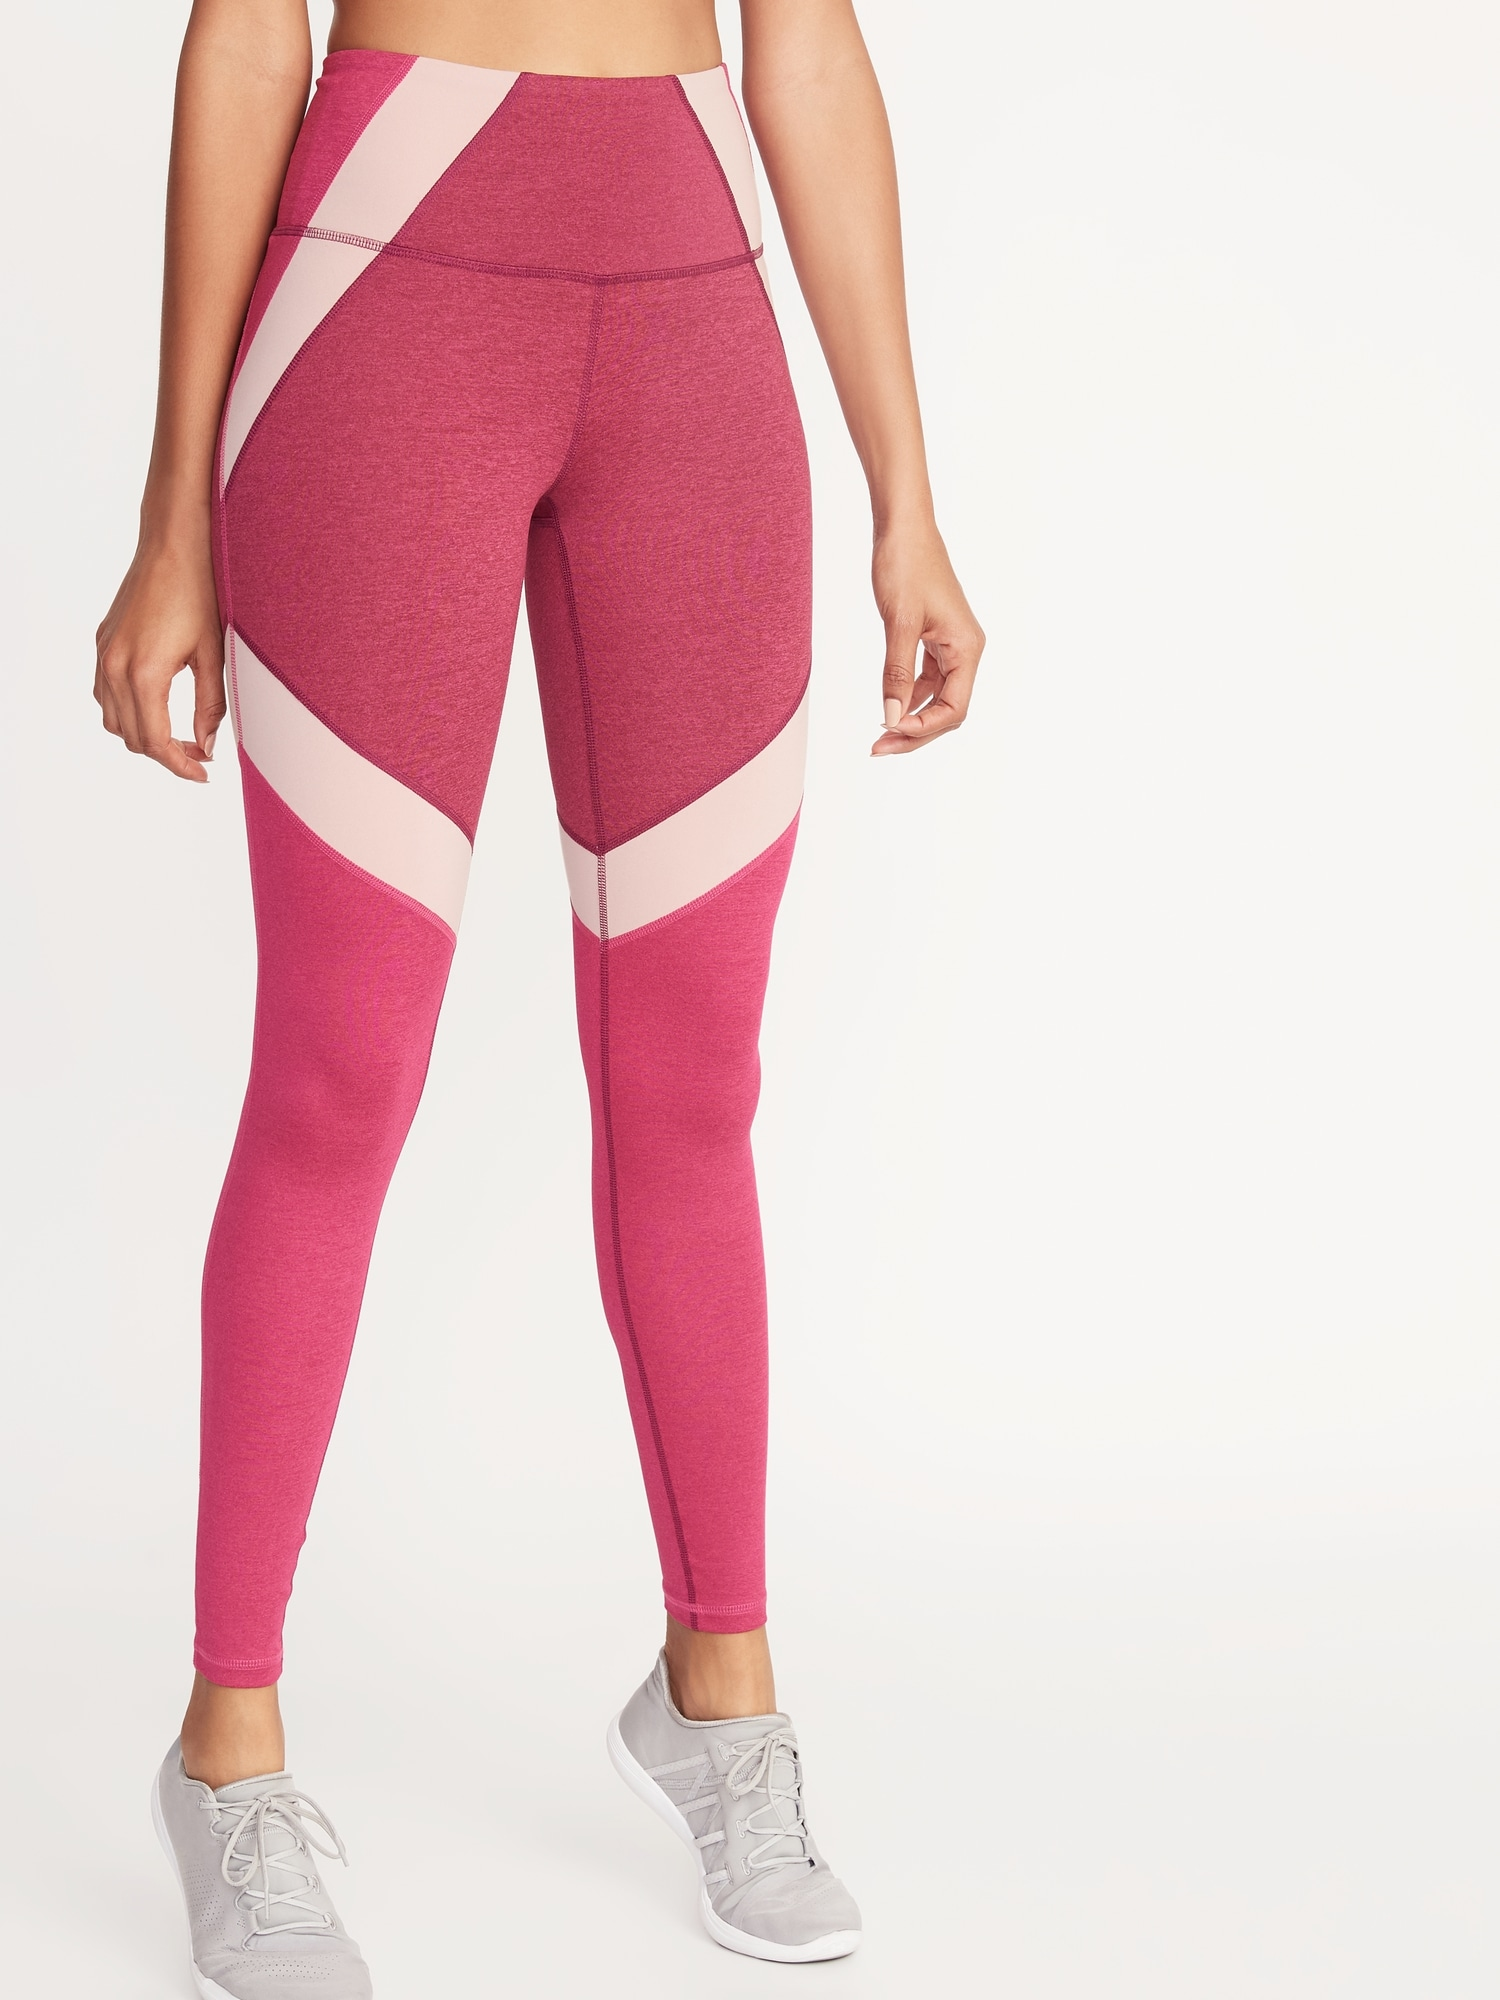 1c9cdf2c2120 High-Rise Elevate Color-Block Compression Leggings for Women | Old Navy